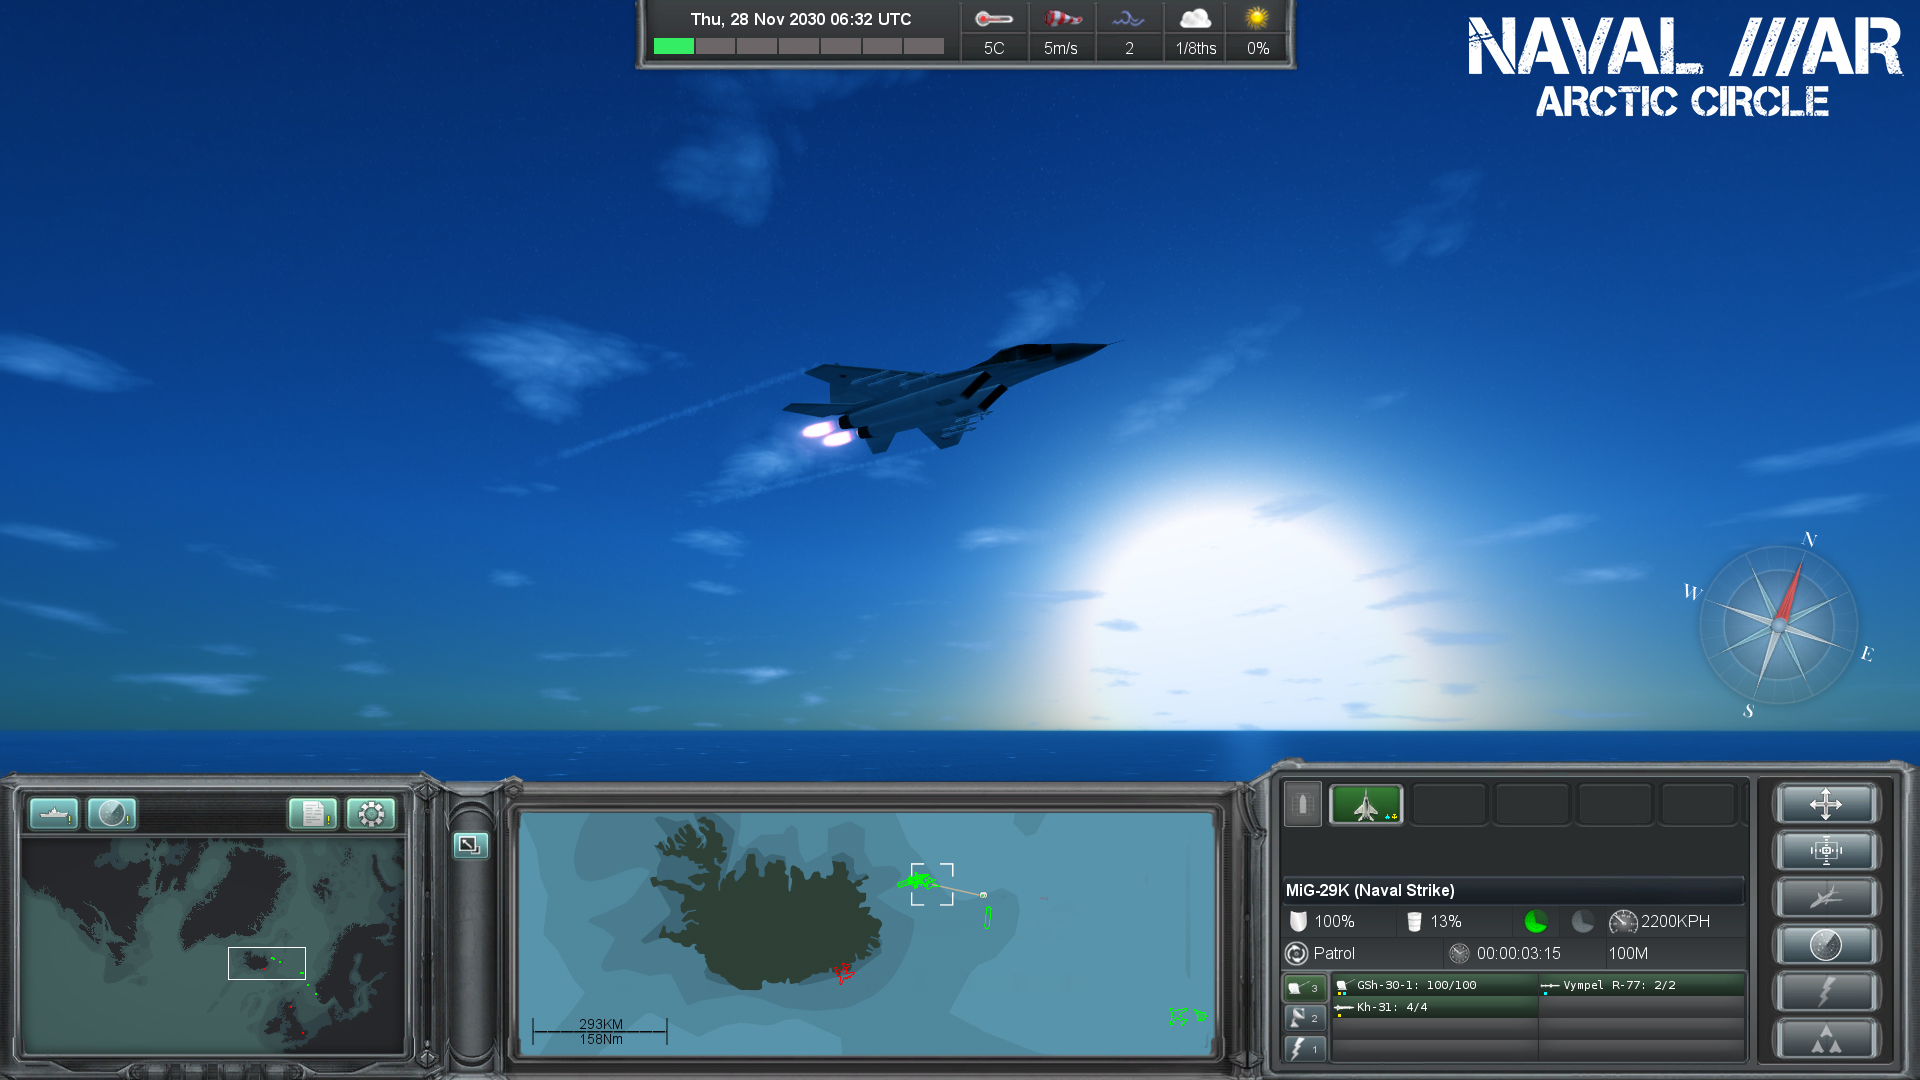 NavalWarArcticCircle_screen_29k_night_01